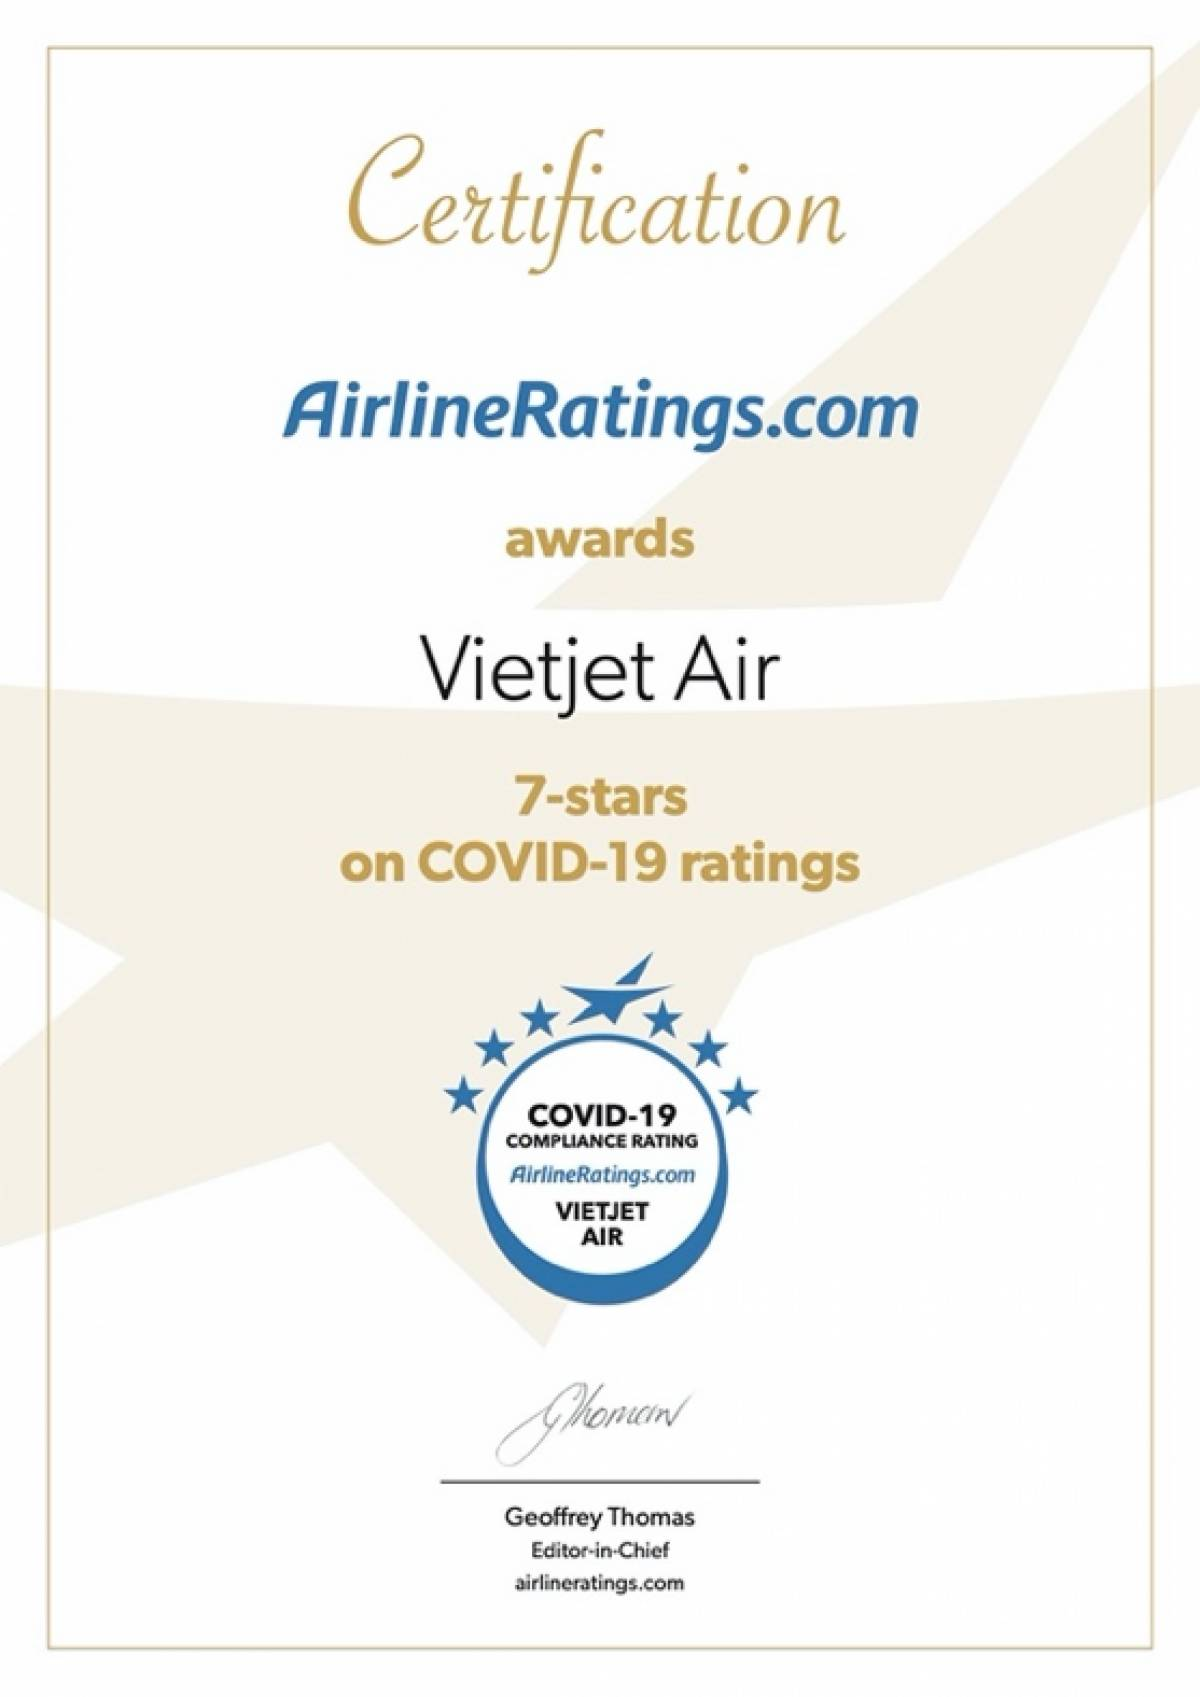 Vietjet Certified With the Highest Global Ranking for Covid-19 Compliance